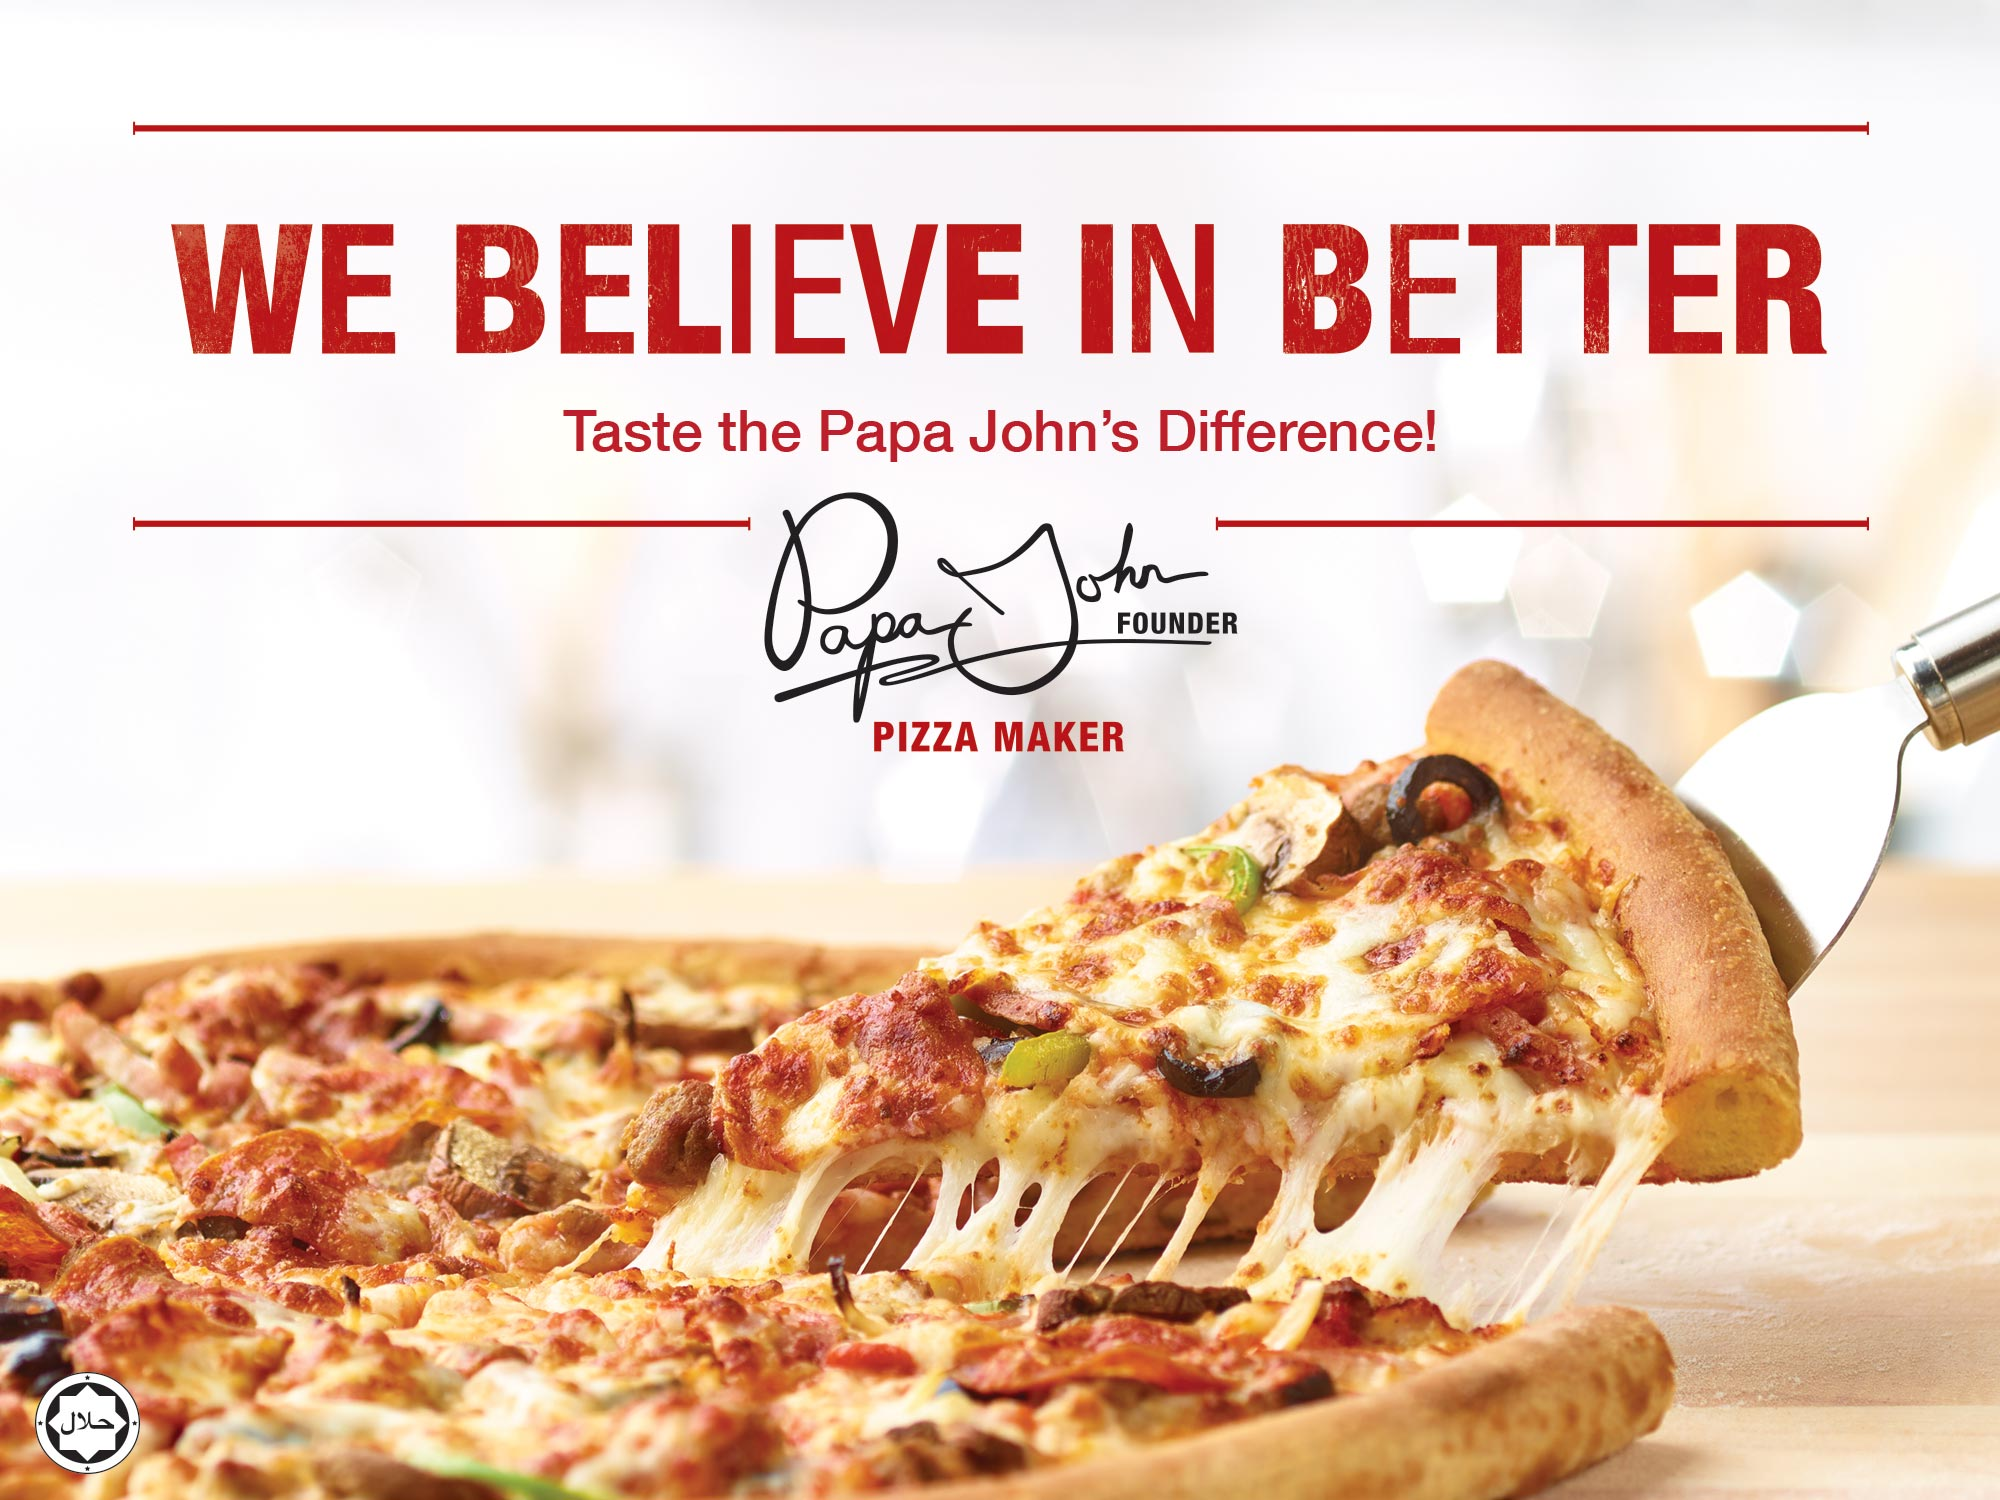 Papa John's Pizza - Kingdom of Bahrain